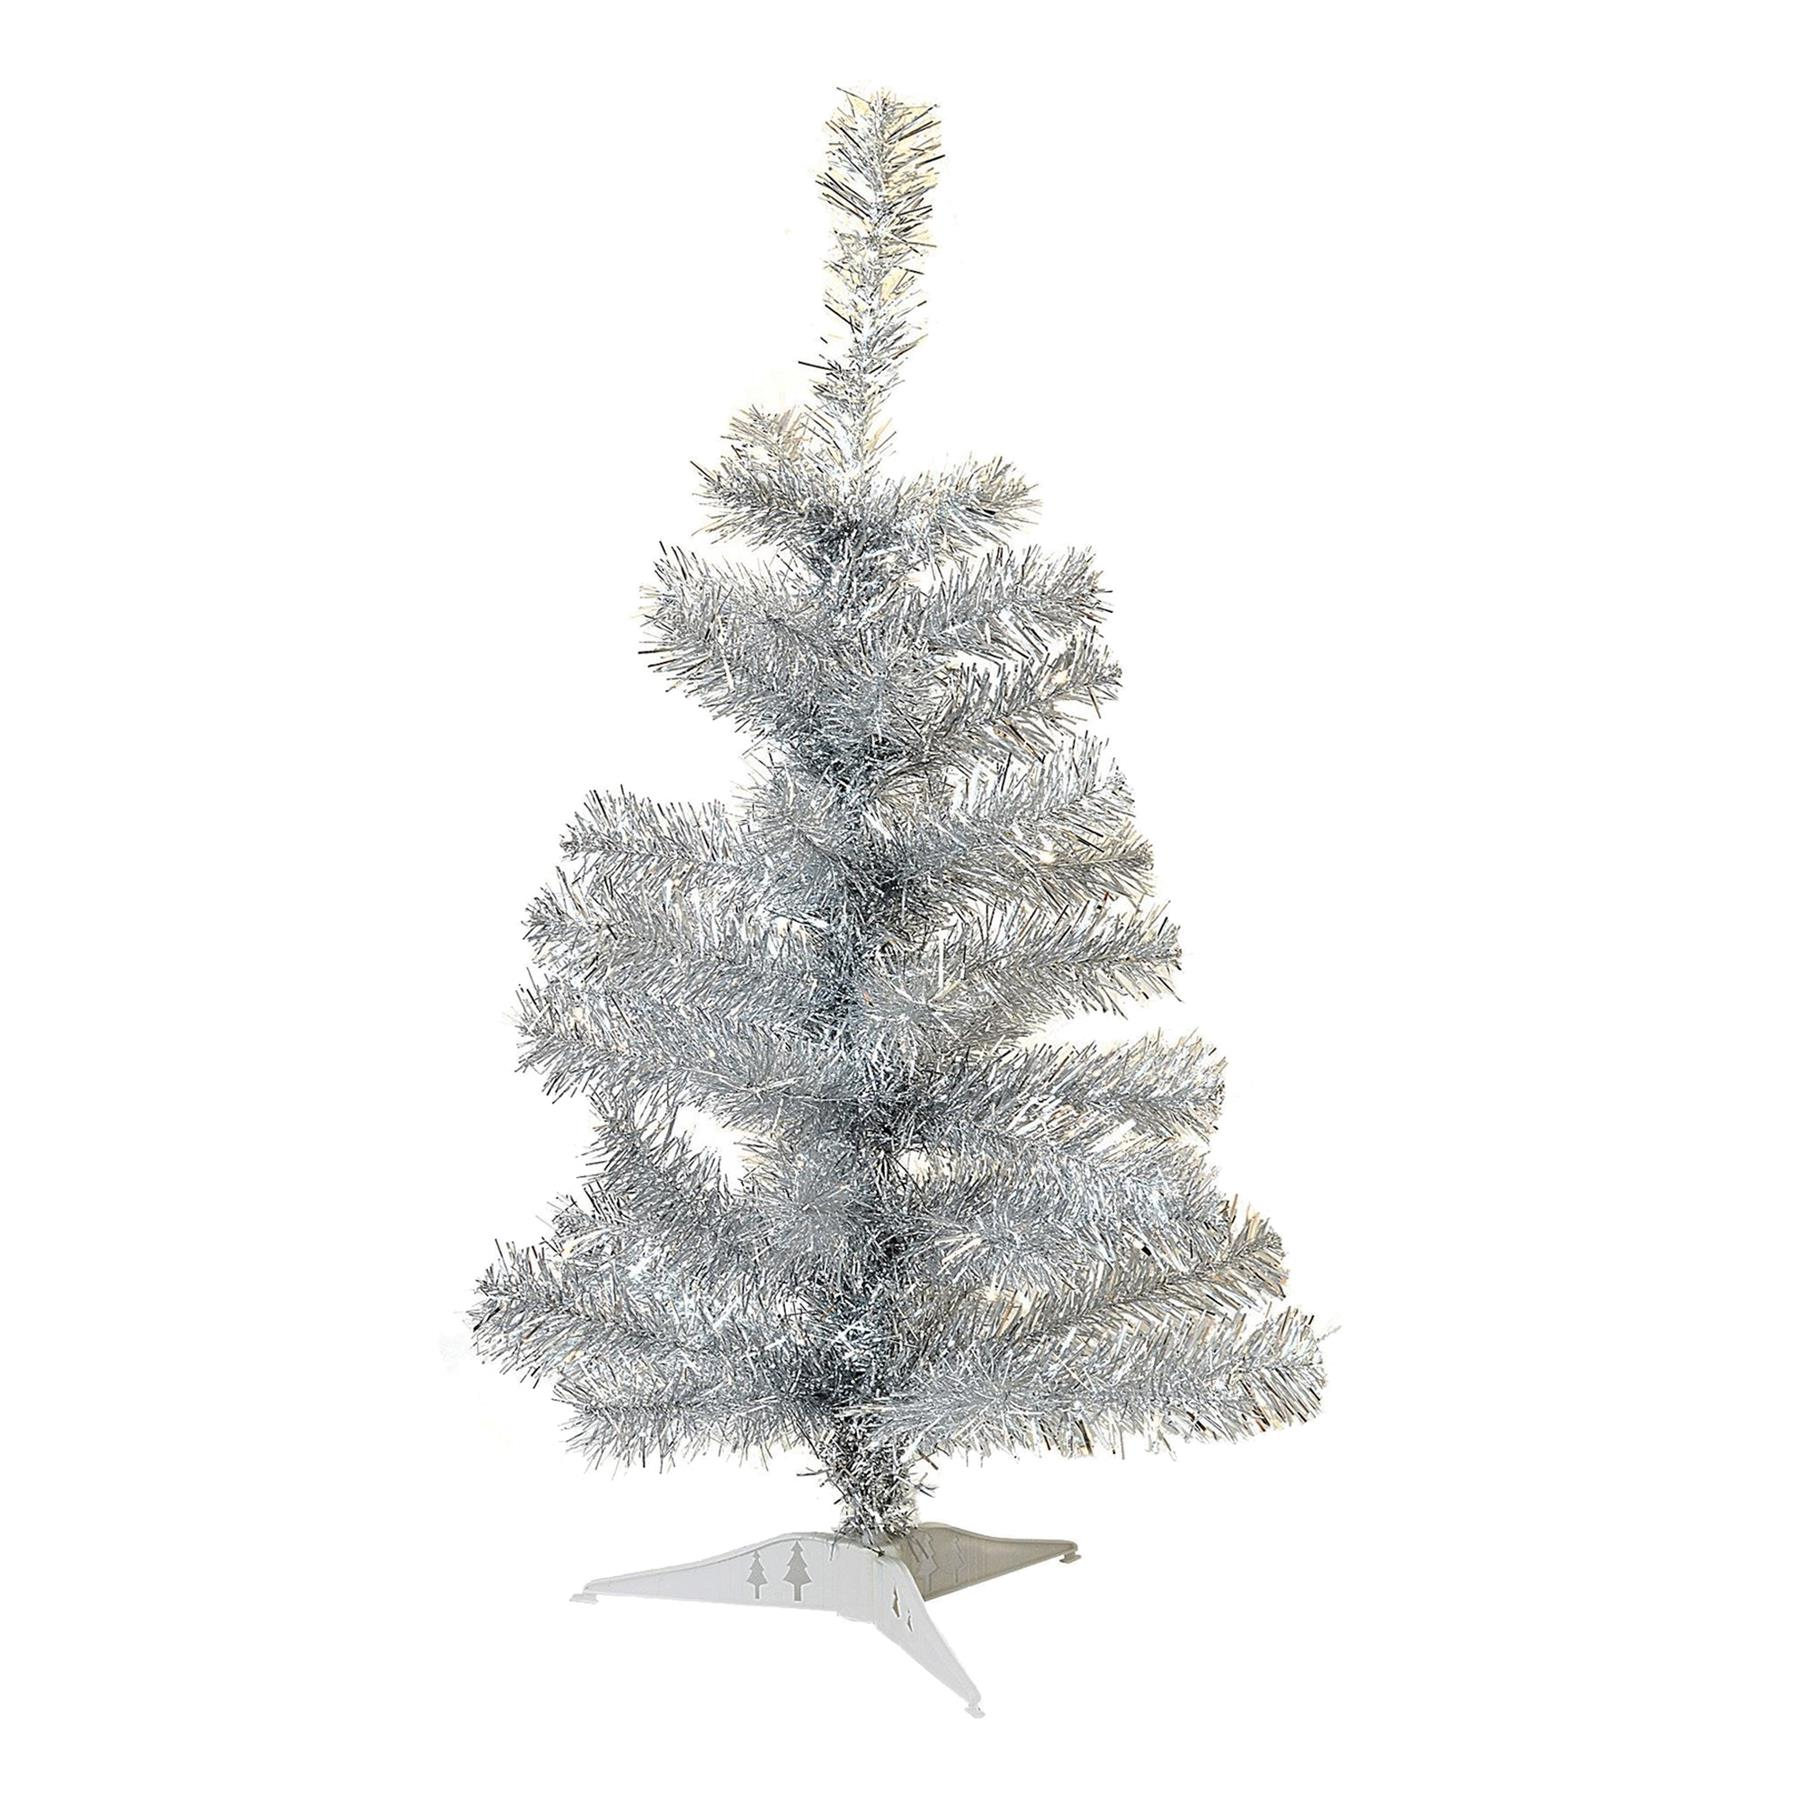 Silver Christmas Tree Xmas Artificial Traditional Pine Small With Stand 2ft 60cm 5055512092185 Ebay